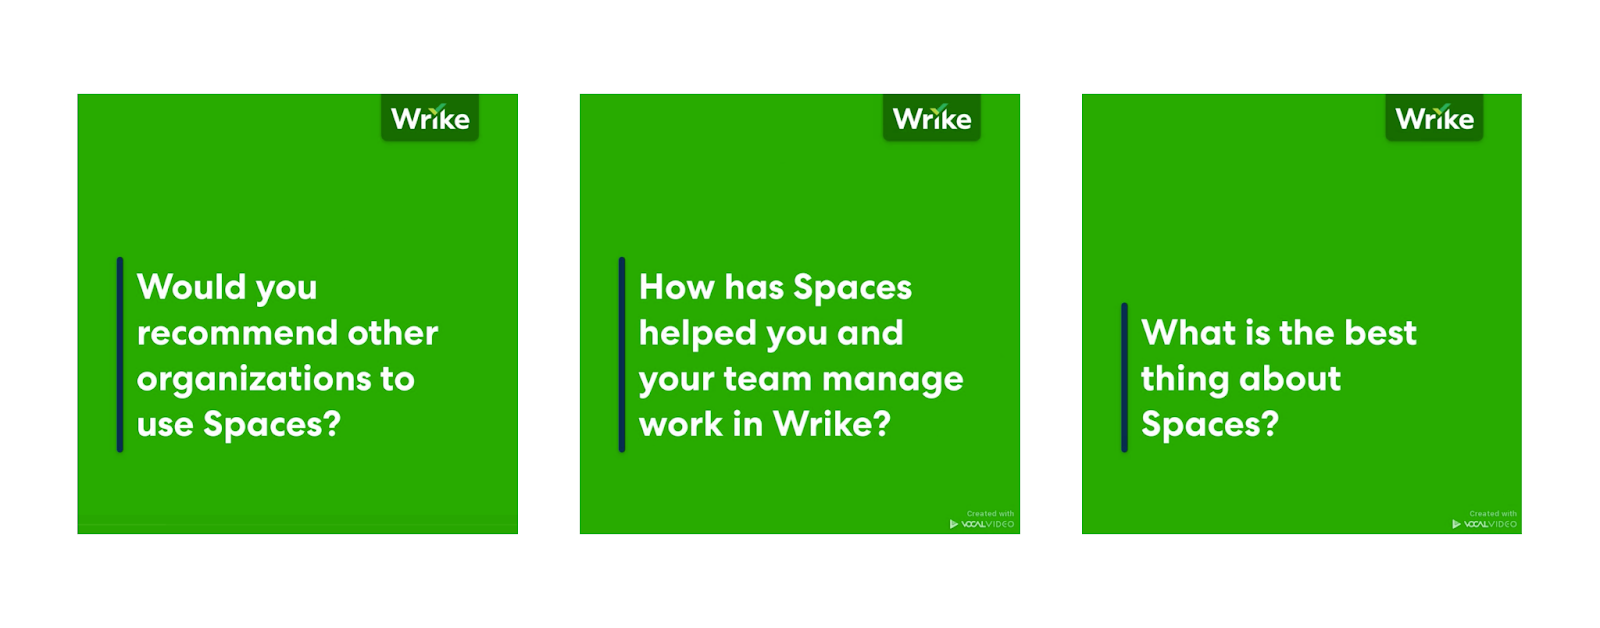 """Interstitial graphics are added within Vocal Video for each question: """"Would you recommend other organizations to use Spaces?"""" and """"How has Spaces helped you and your team manage work in Wrike?"""" and """"What is the best thing about Spaces?"""""""